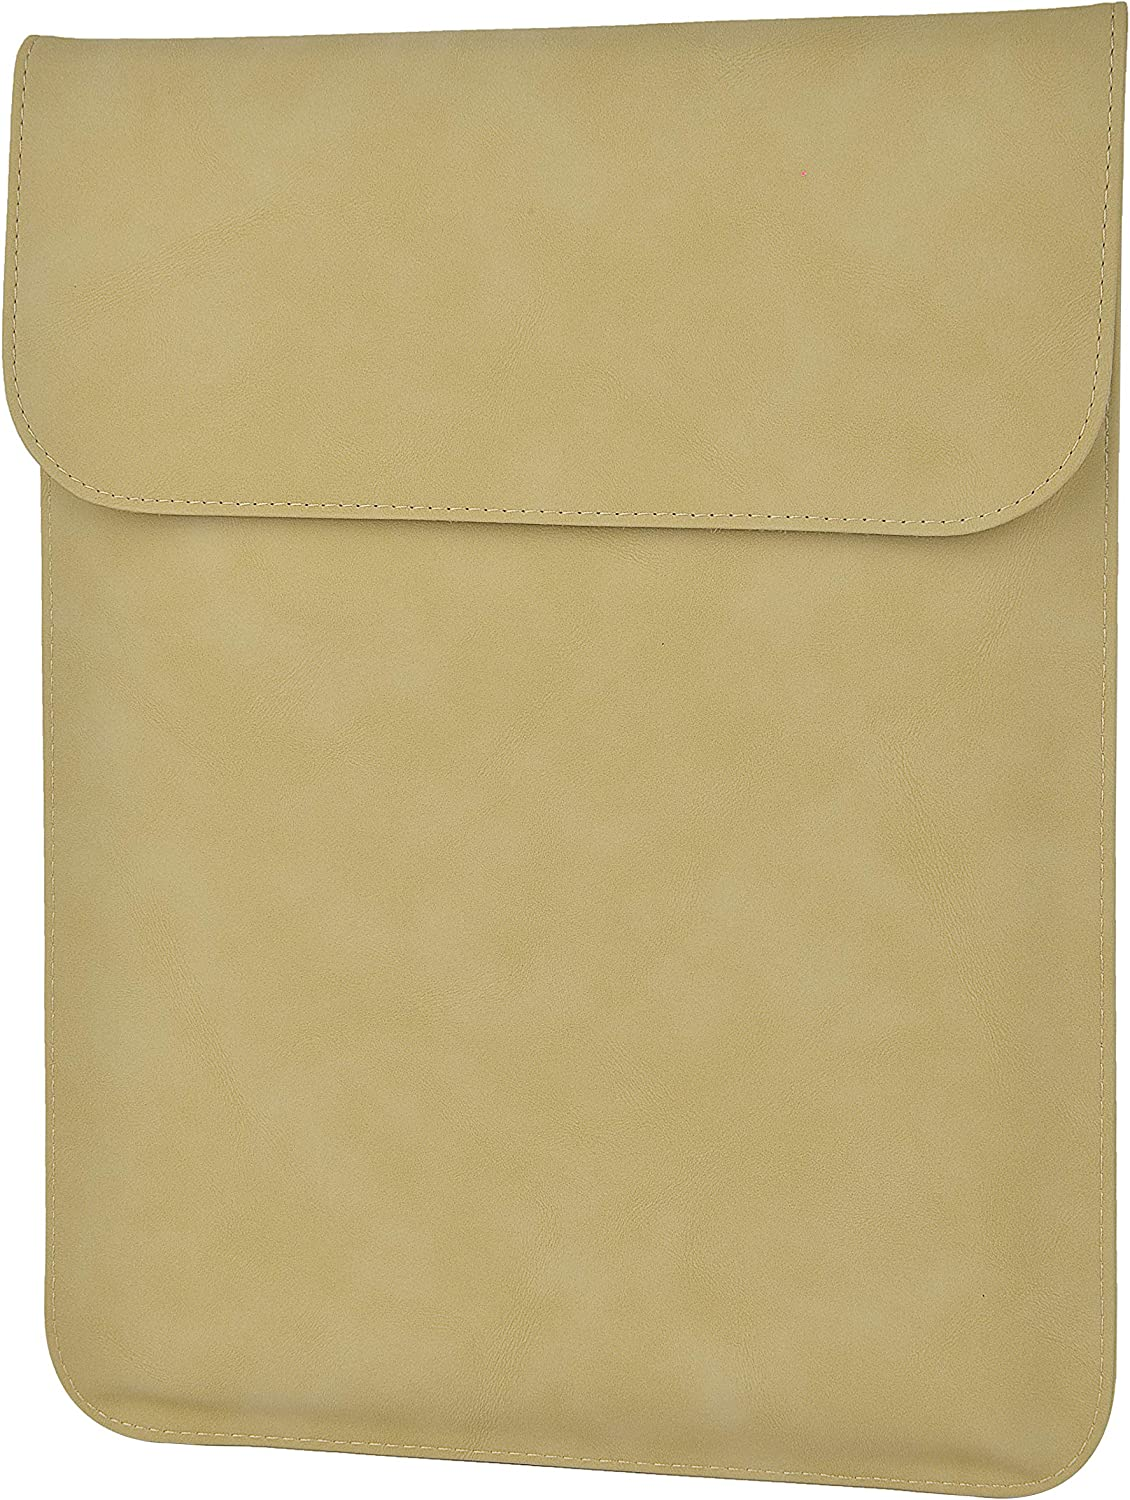 LuvCase Laptop Suede Leather Flap Envelope Sleeve Pouch Case Compatible MacBook Pro 15-16 Inch, A2141/A1707/A1990/A1398/A1286, Chromebook, Acer, Thinkpad HP Notebook (Khaki Magnetic Sleeve (Vertical))